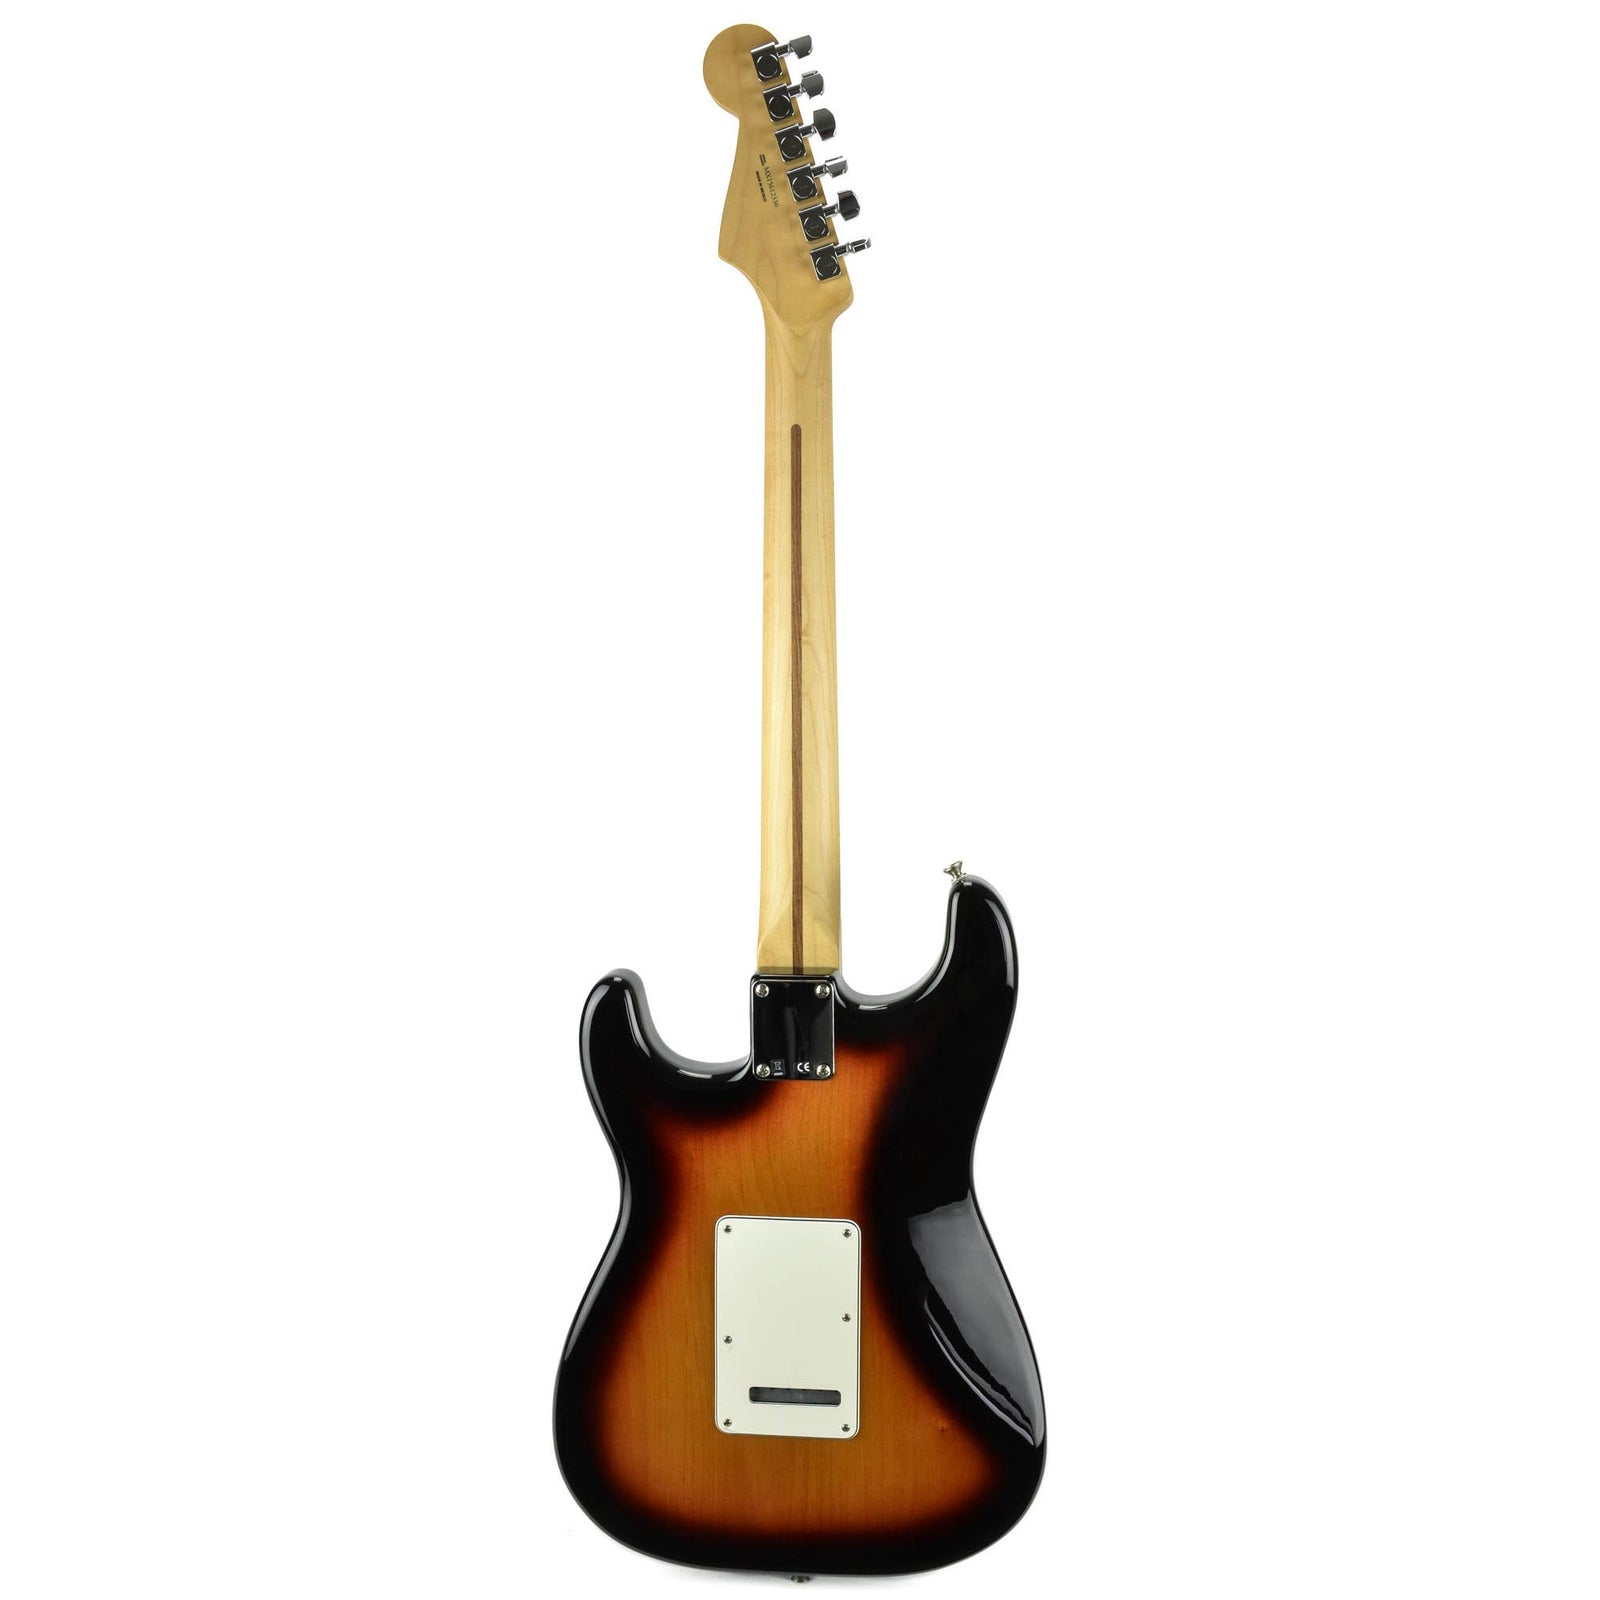 Fender Standard Stratocaster - Maple Fingerboard - Brown Sunburst - Used - Image: 4